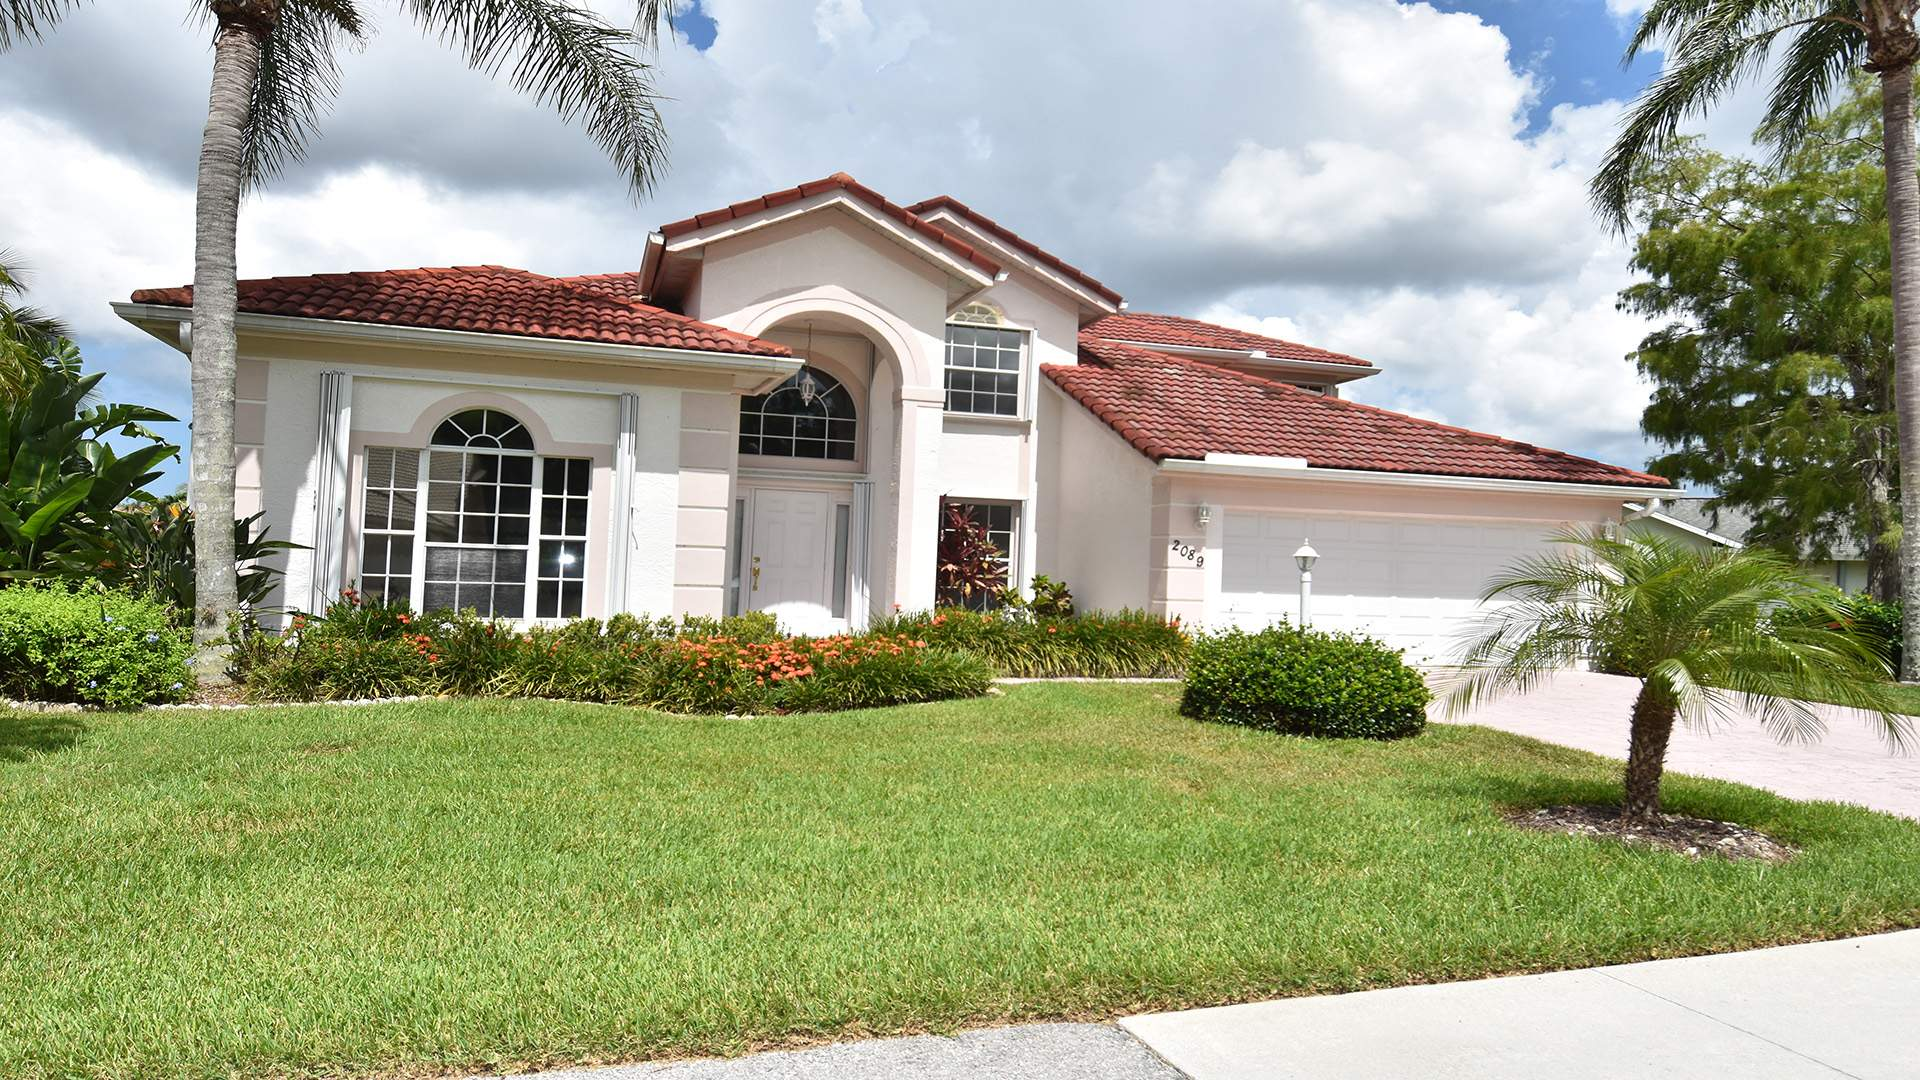 This attractive two-story home is located in the Crown Pointe community in Naples